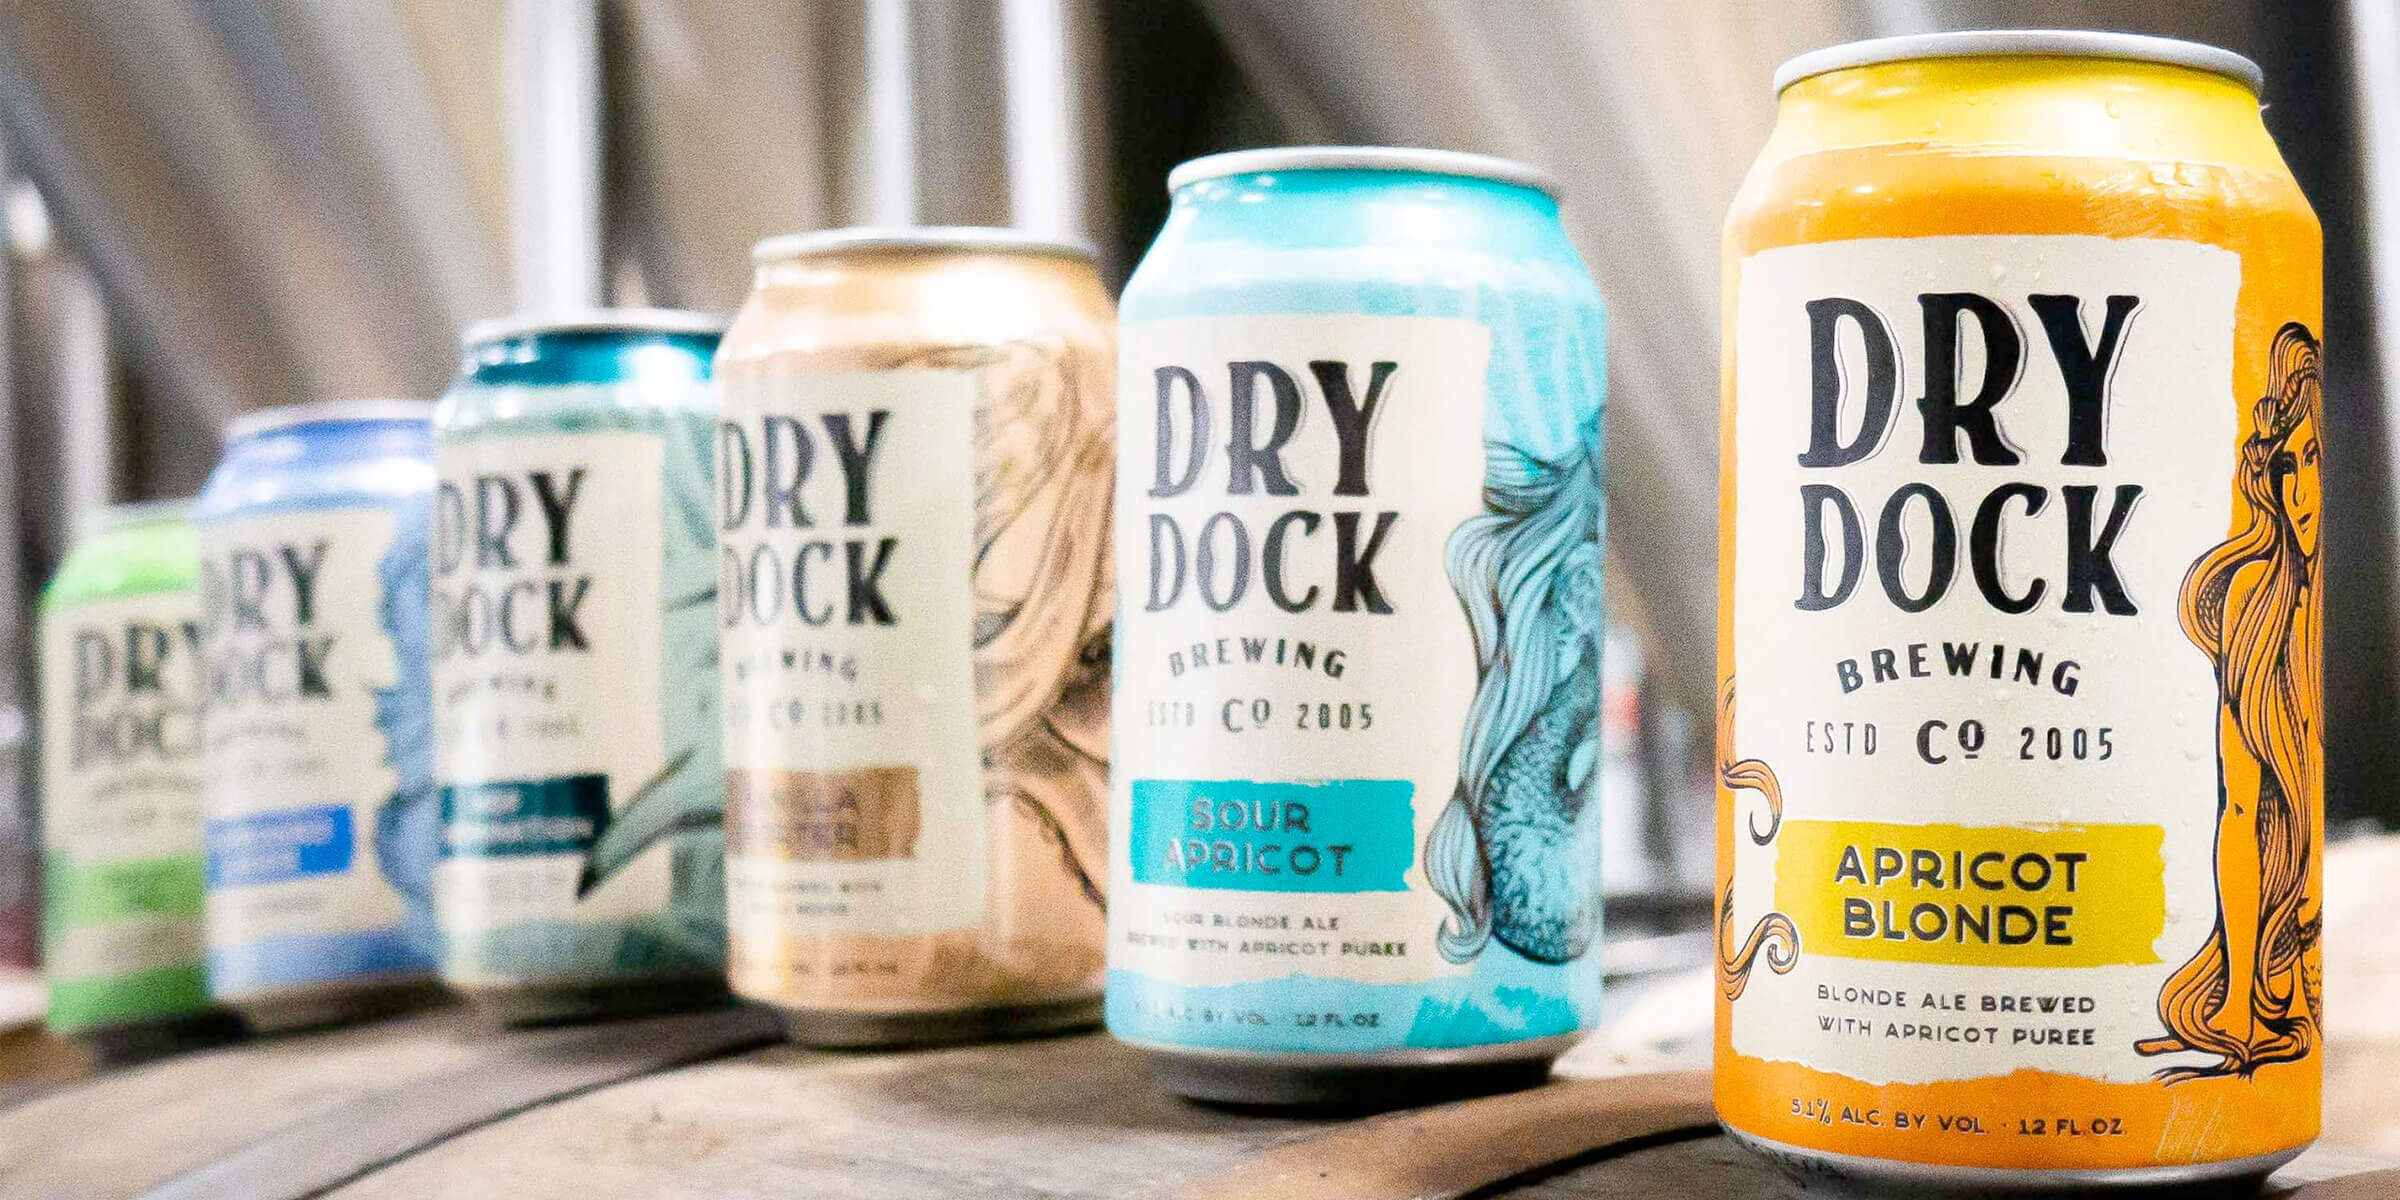 Dry Dock Brewing Company, the first craft brewery in Aurora, Colorado, is releasing a refresh of its company logo and packaging.